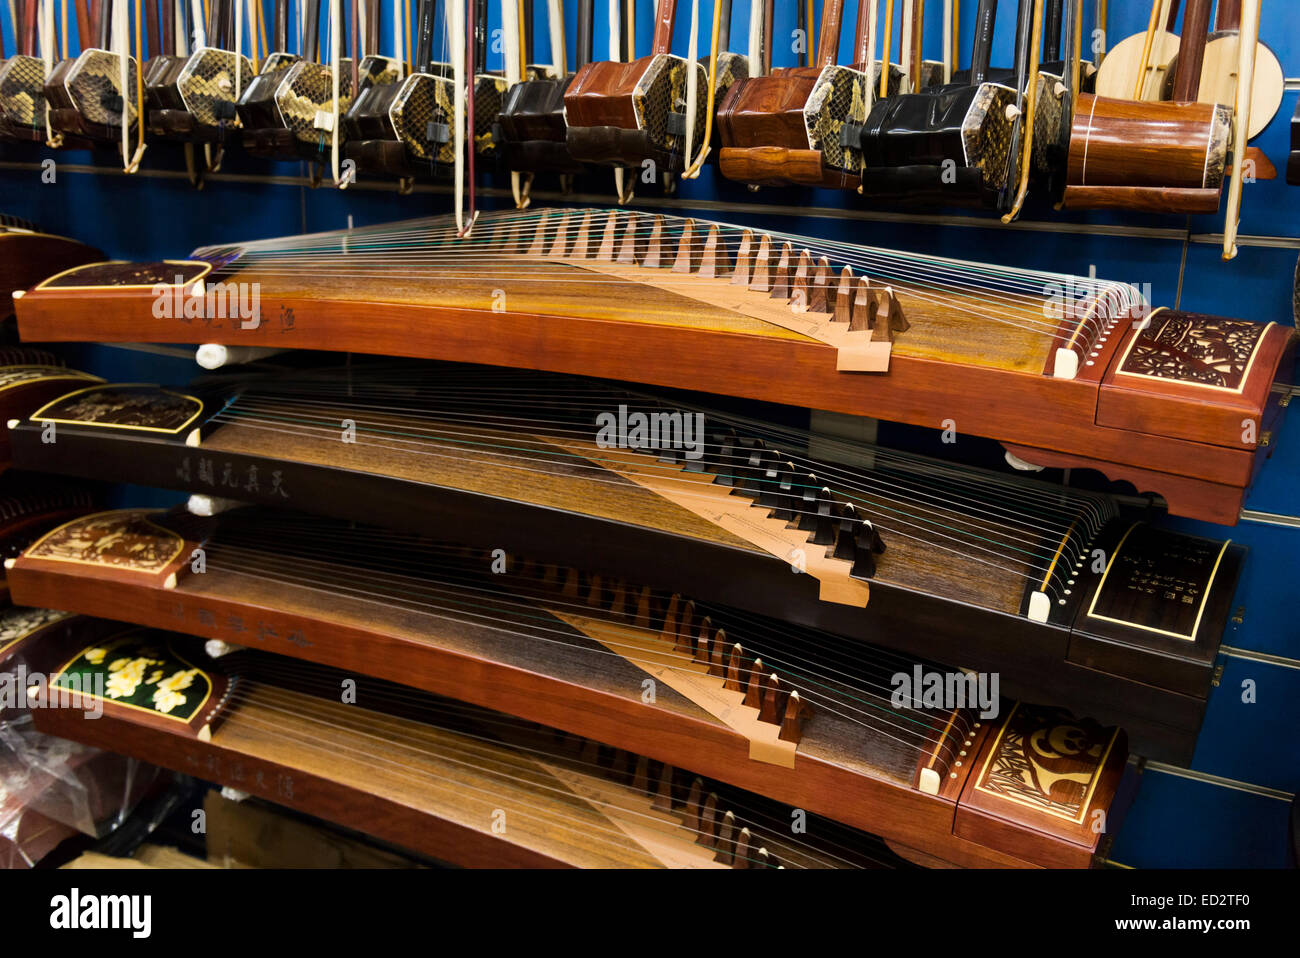 Guzheng, Chinese zither, musical instruments in a store in Shanghai, China. - Stock Image